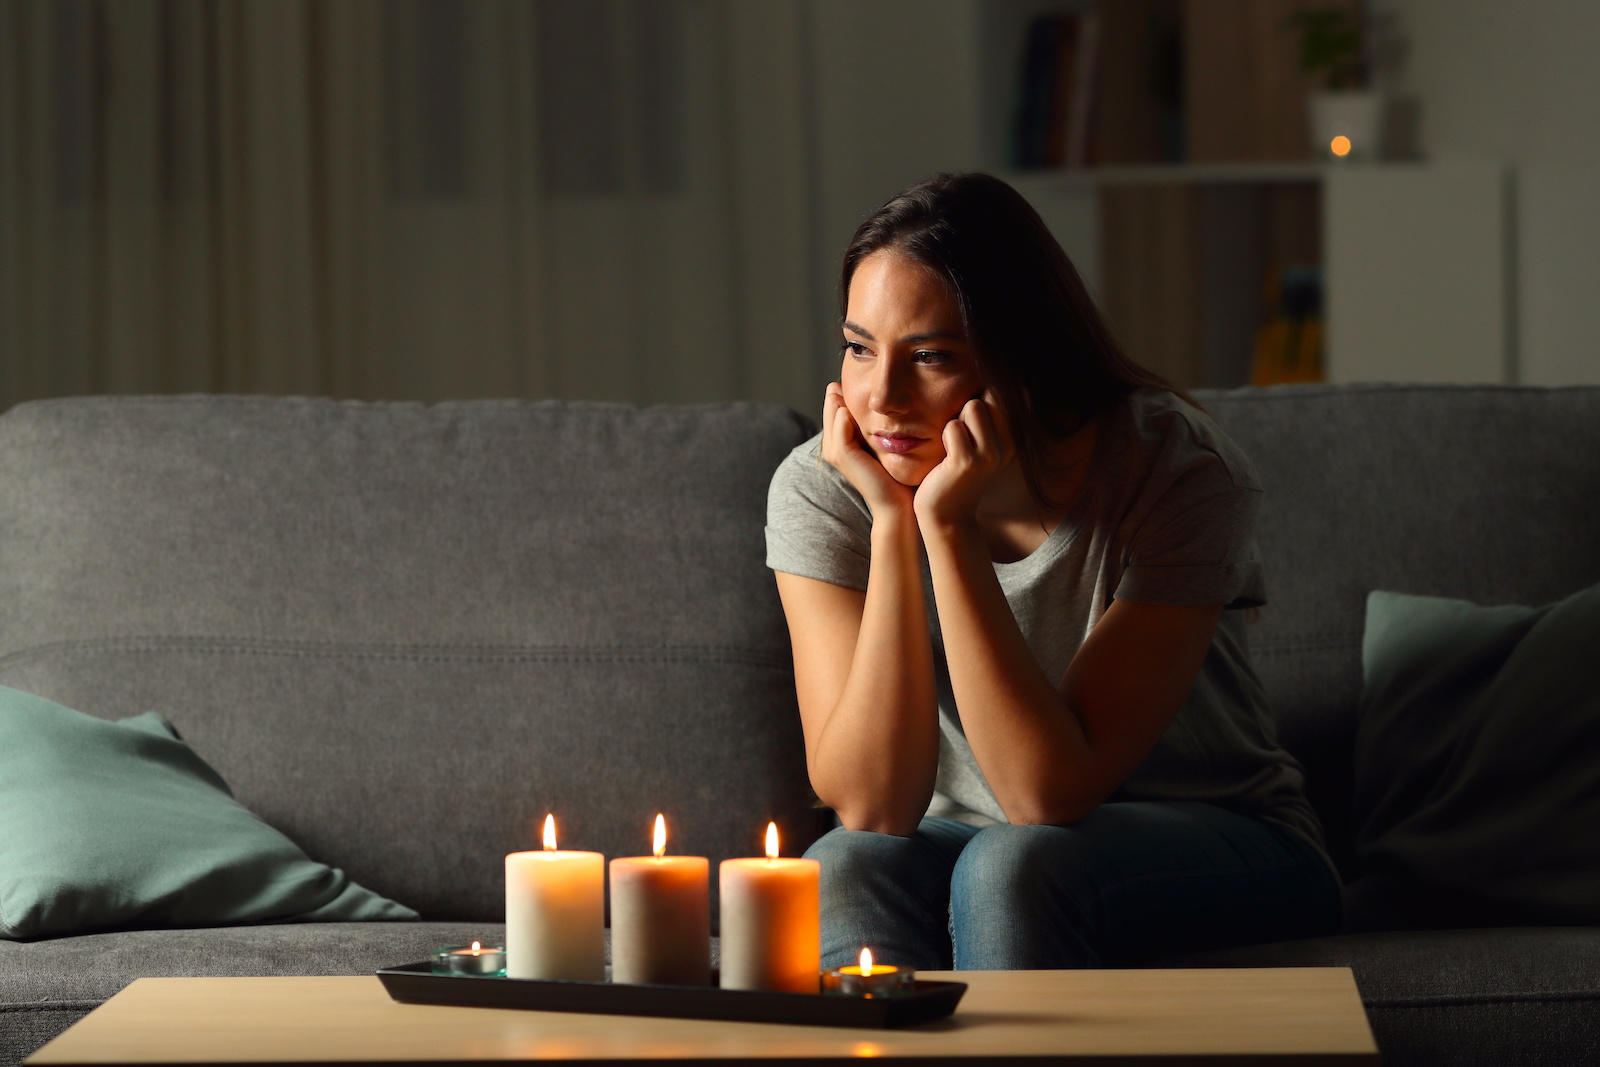 Young woman sitting next to candle light in a house without electricity